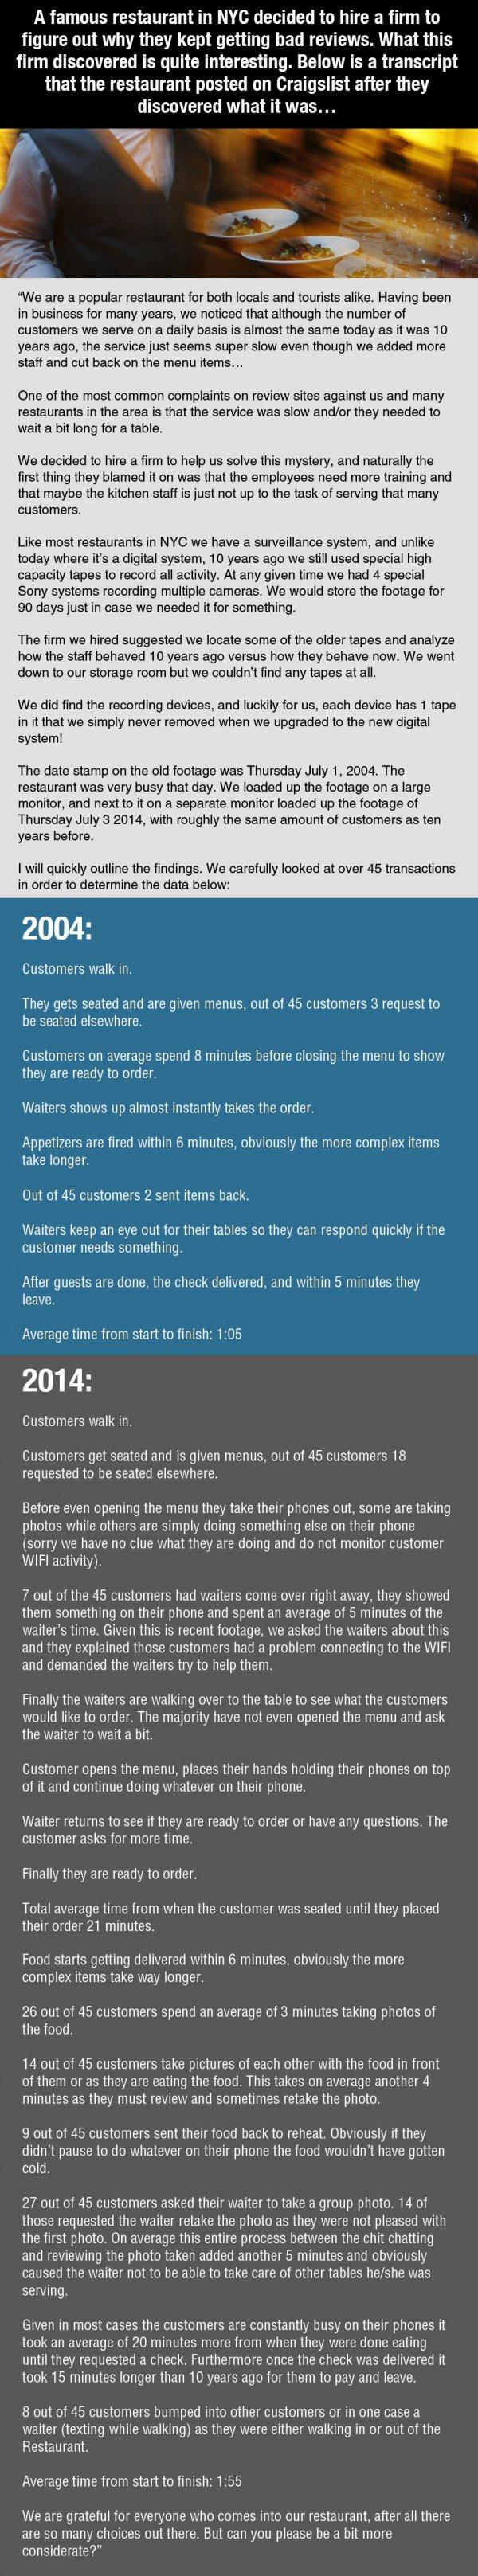 This Restaurant Kept Getting Awful Reviews. Then They Discovered This... -   Misc